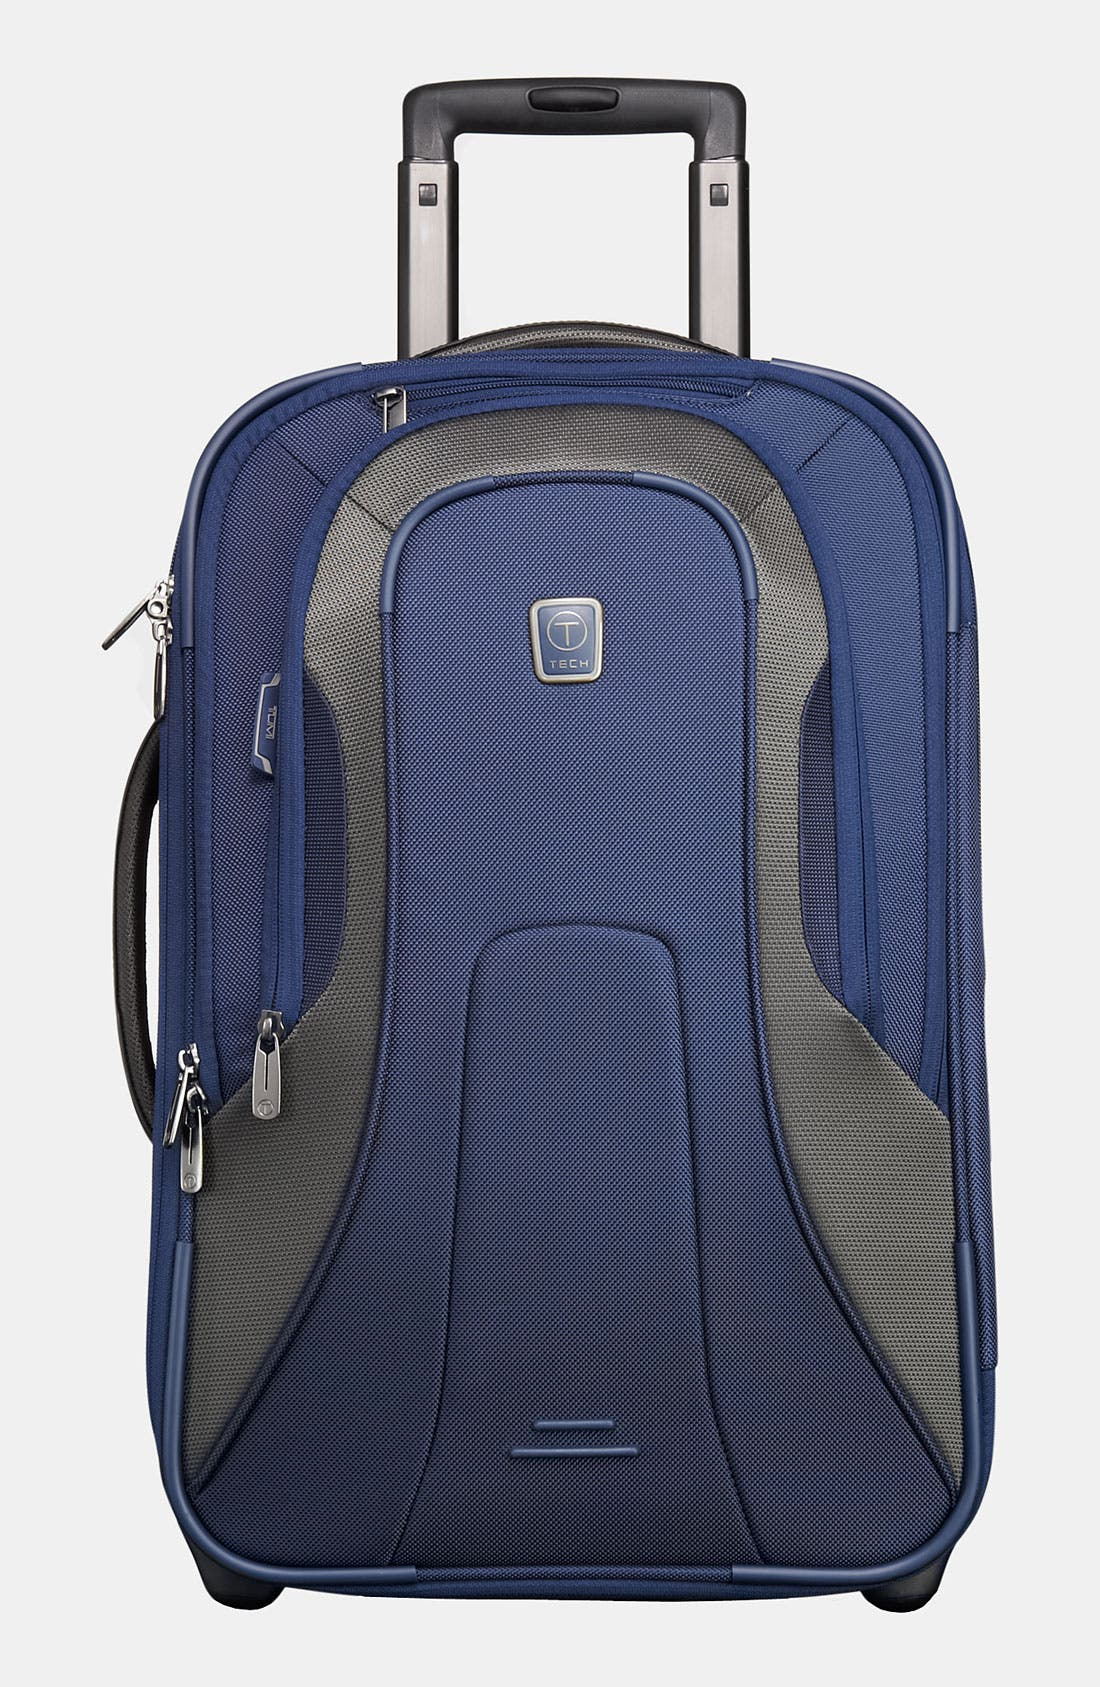 Main Image - Tumi 'T-Tech Presidio - Park' International Business Carry-On